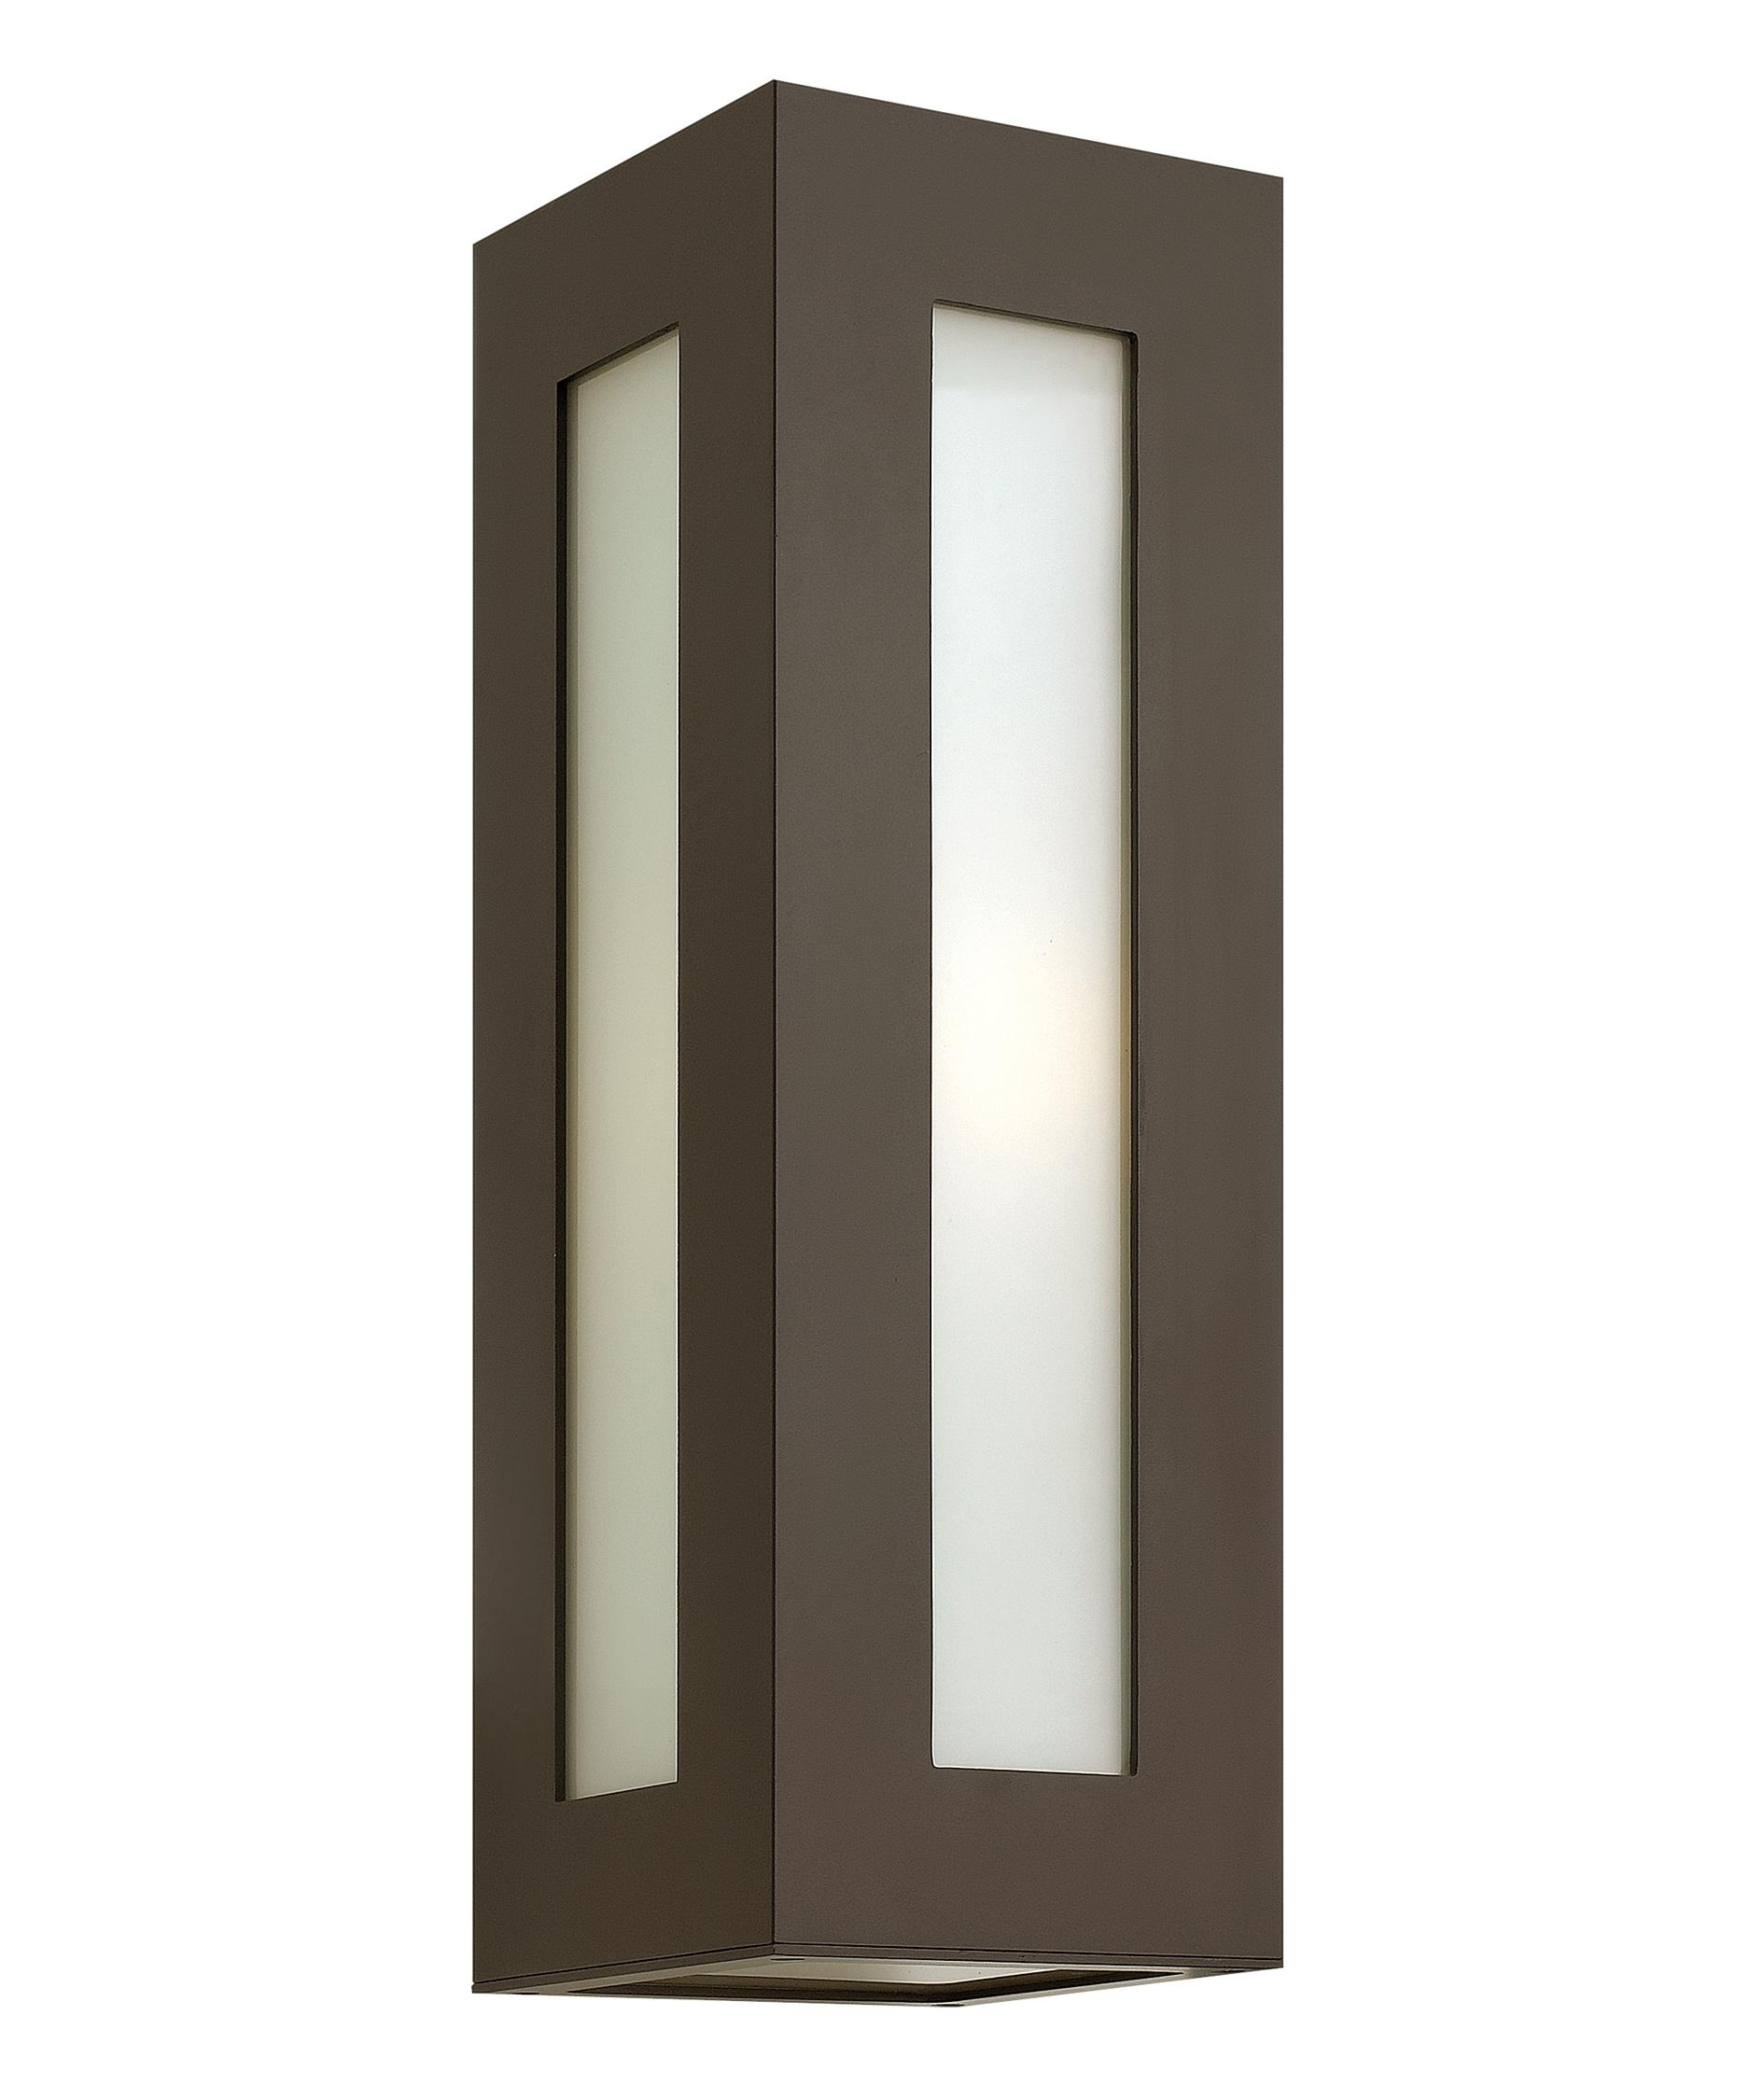 Contemporary Hinkley Lighting Within Recent Hinkley Lighting 2194 Dorian 6 Inch Wide 1 Light Outdoor Wall Light (View 2 of 20)